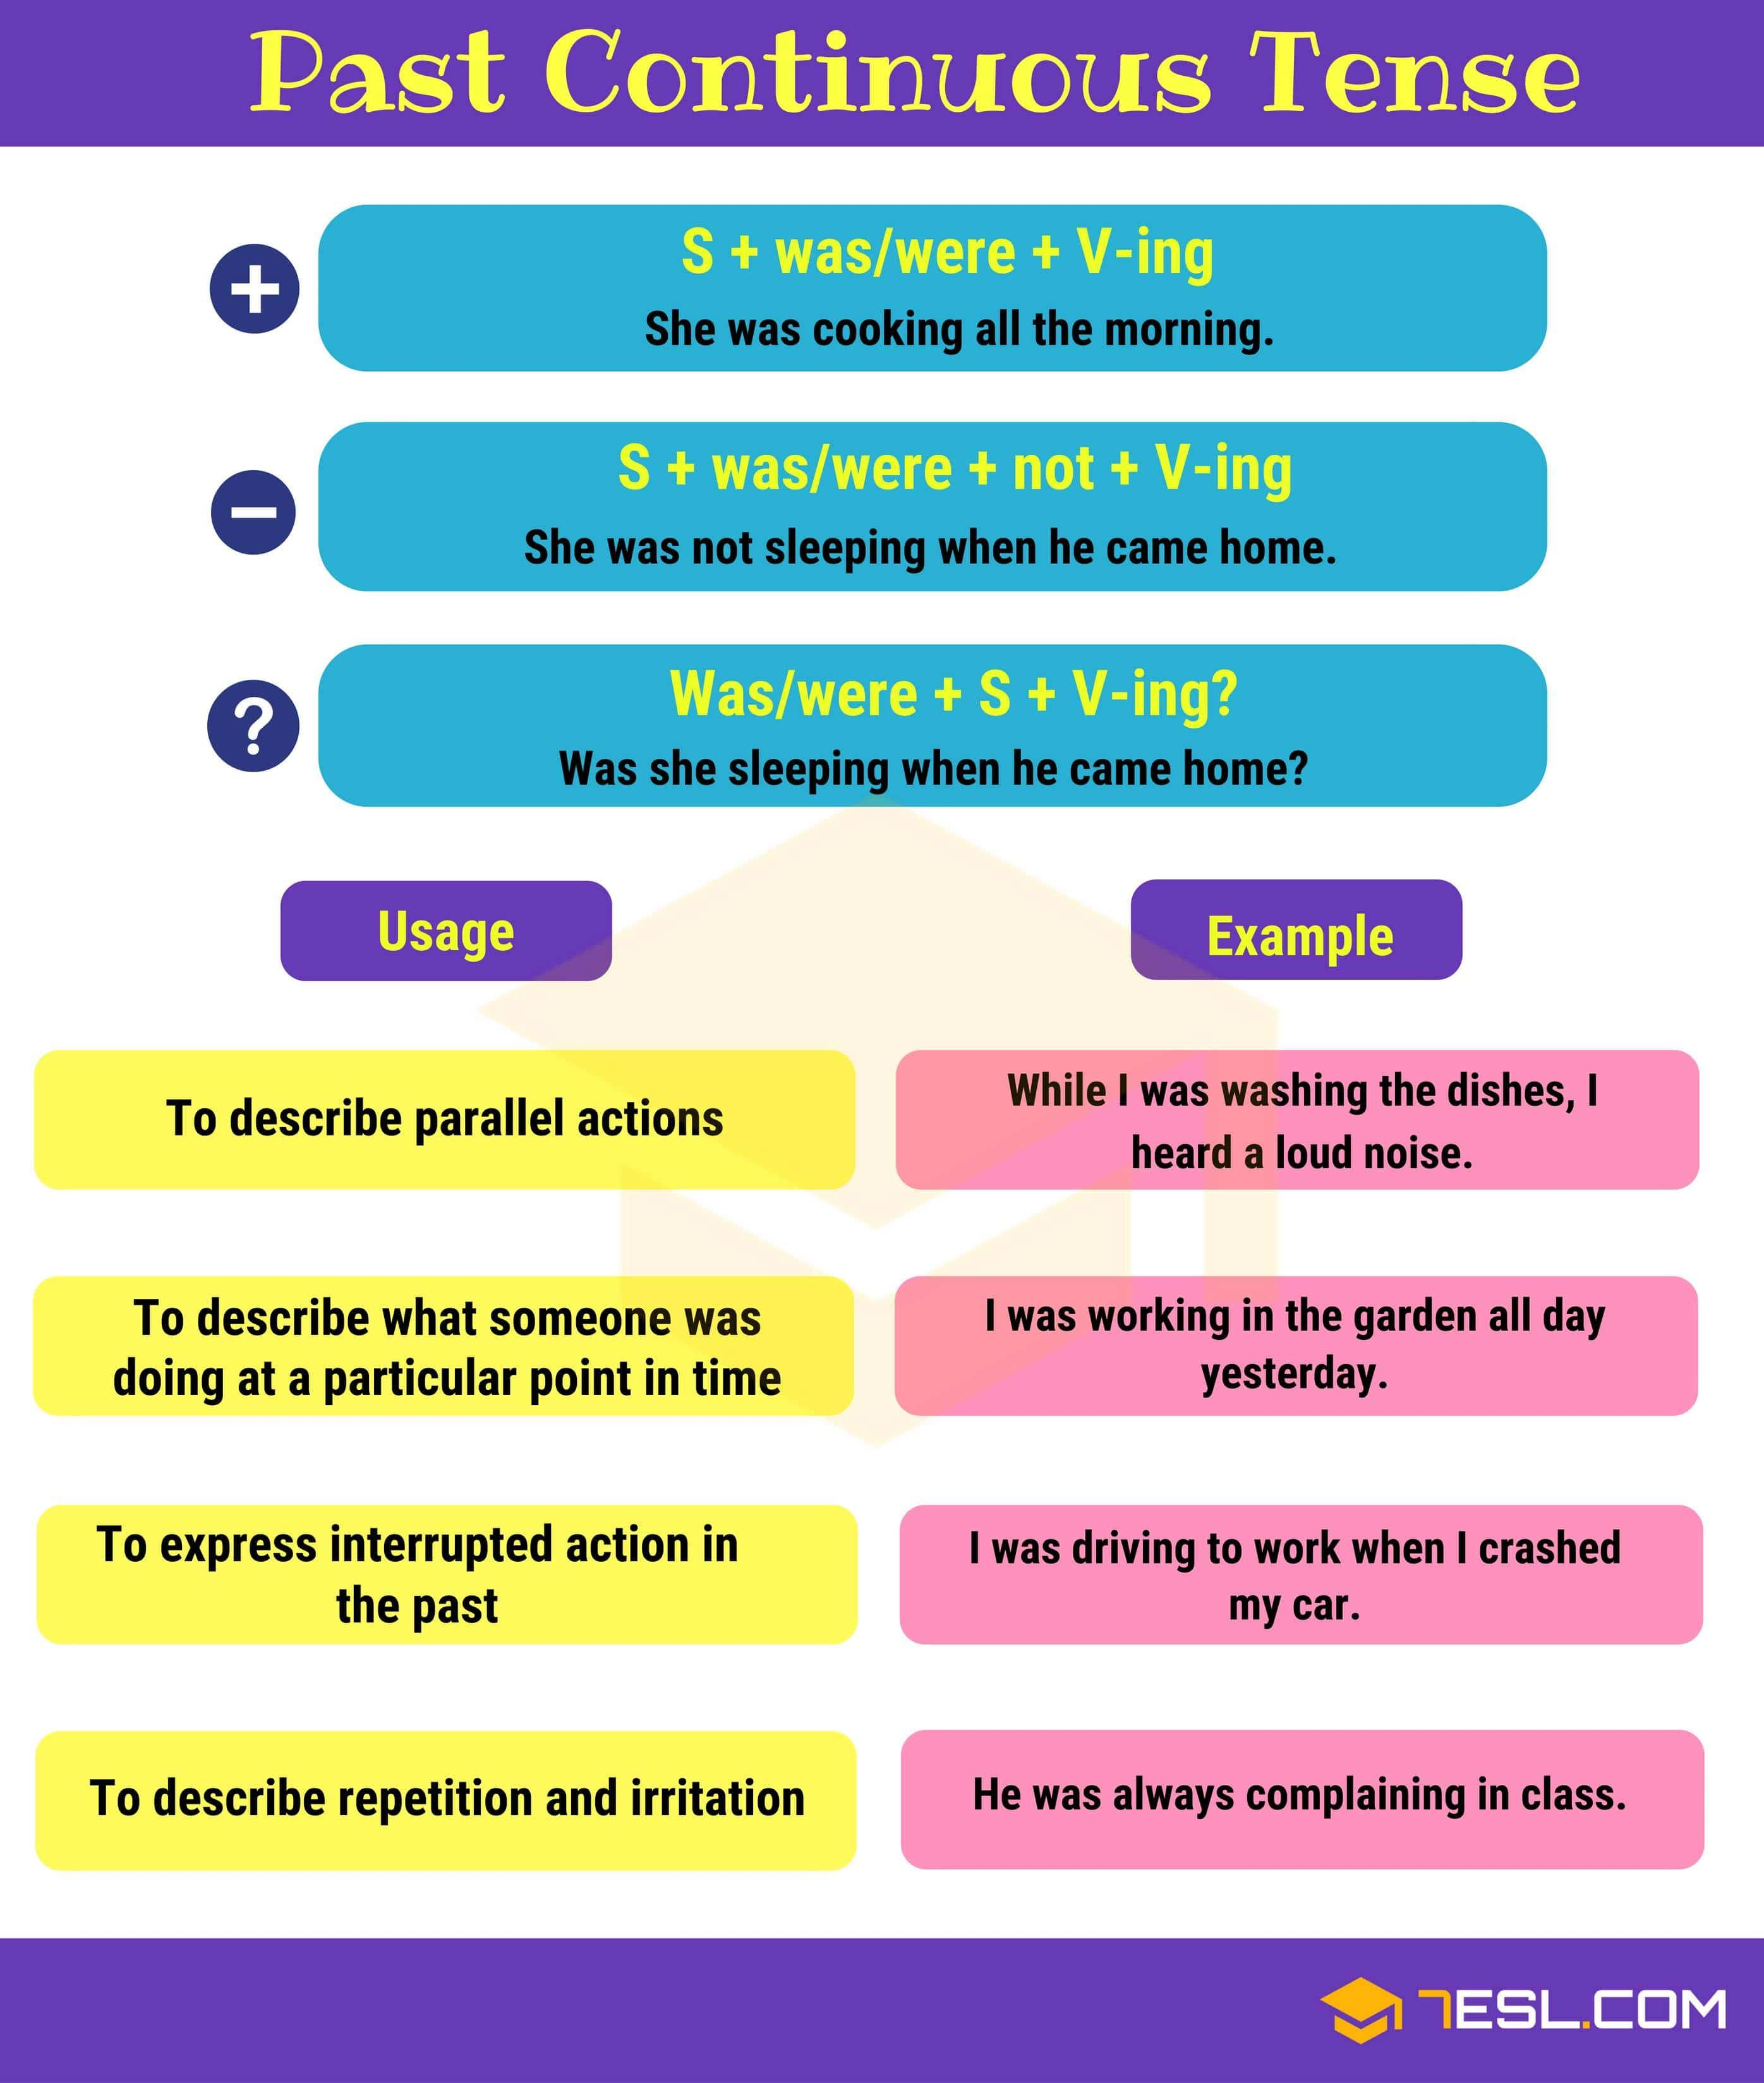 Past Continuous Tense Useful Rules And Examples Con